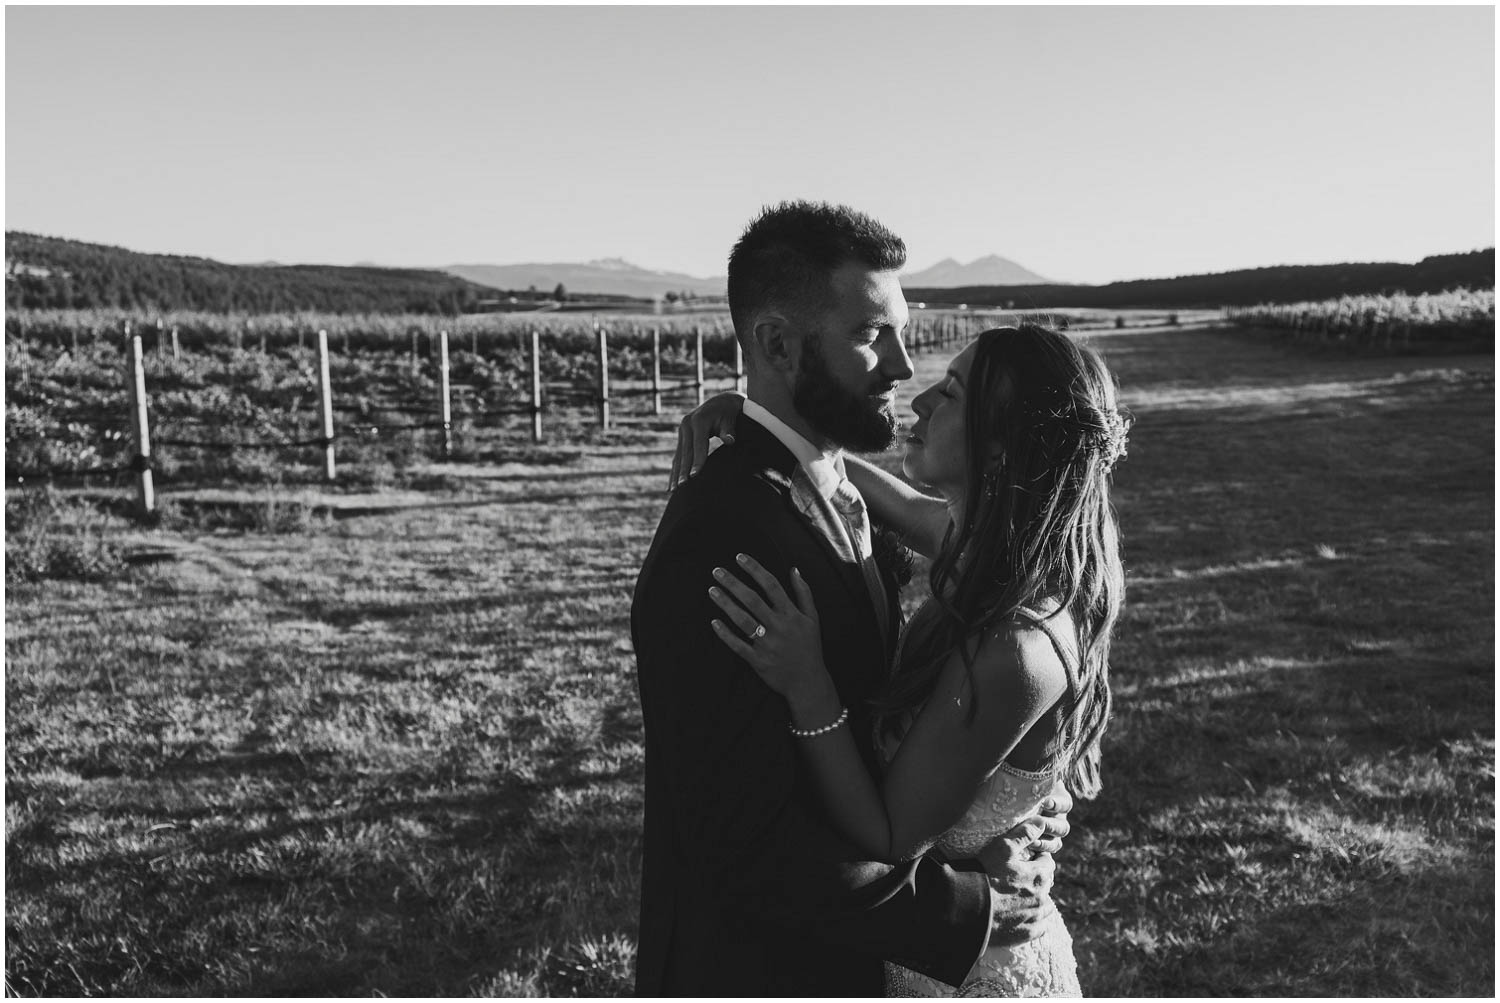 newly wed bride and groom in front of vineyard and mountain view at faith hope and charity madras oregon